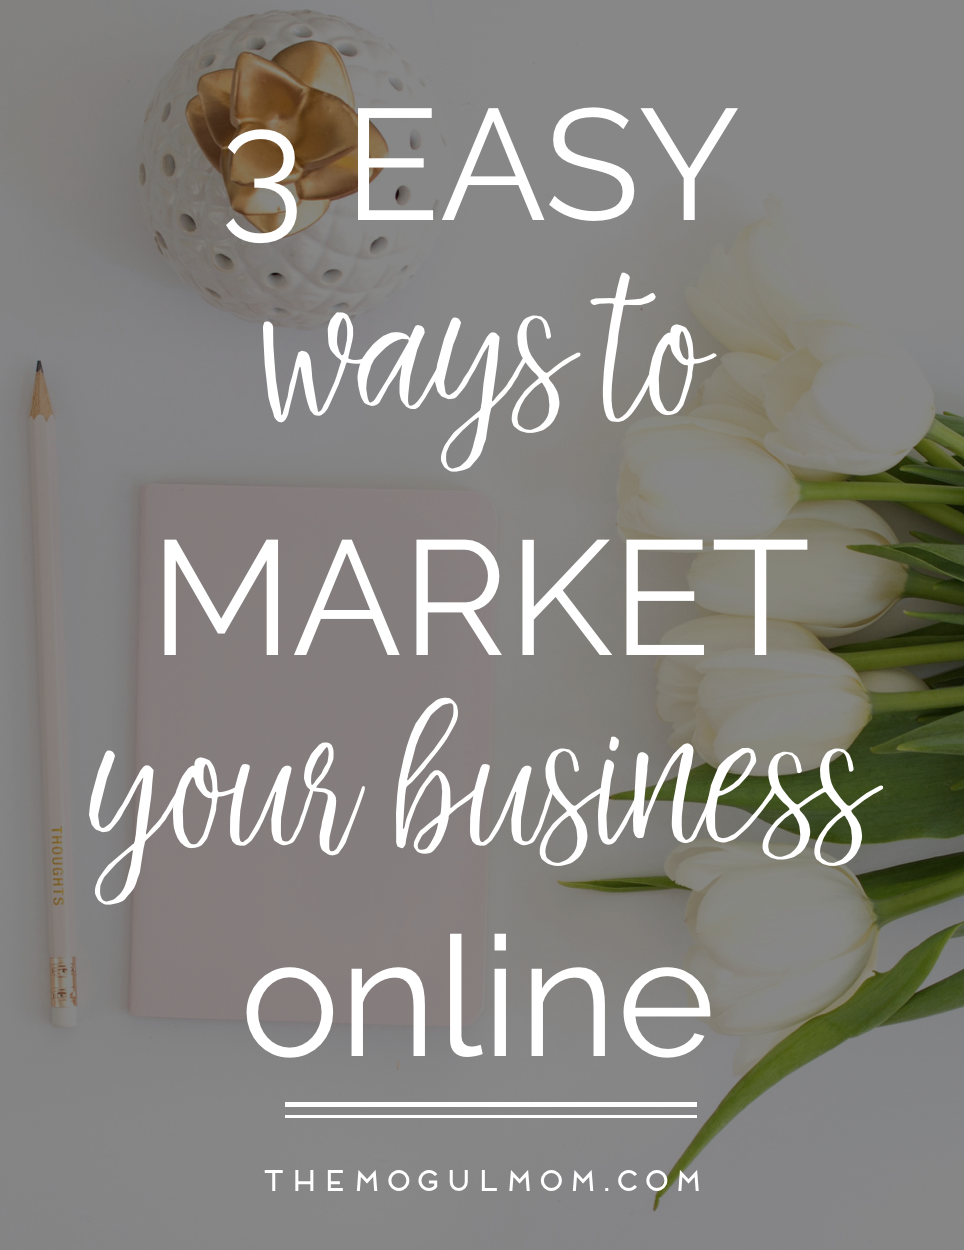 3 Easy Ways to Market Your Business Online